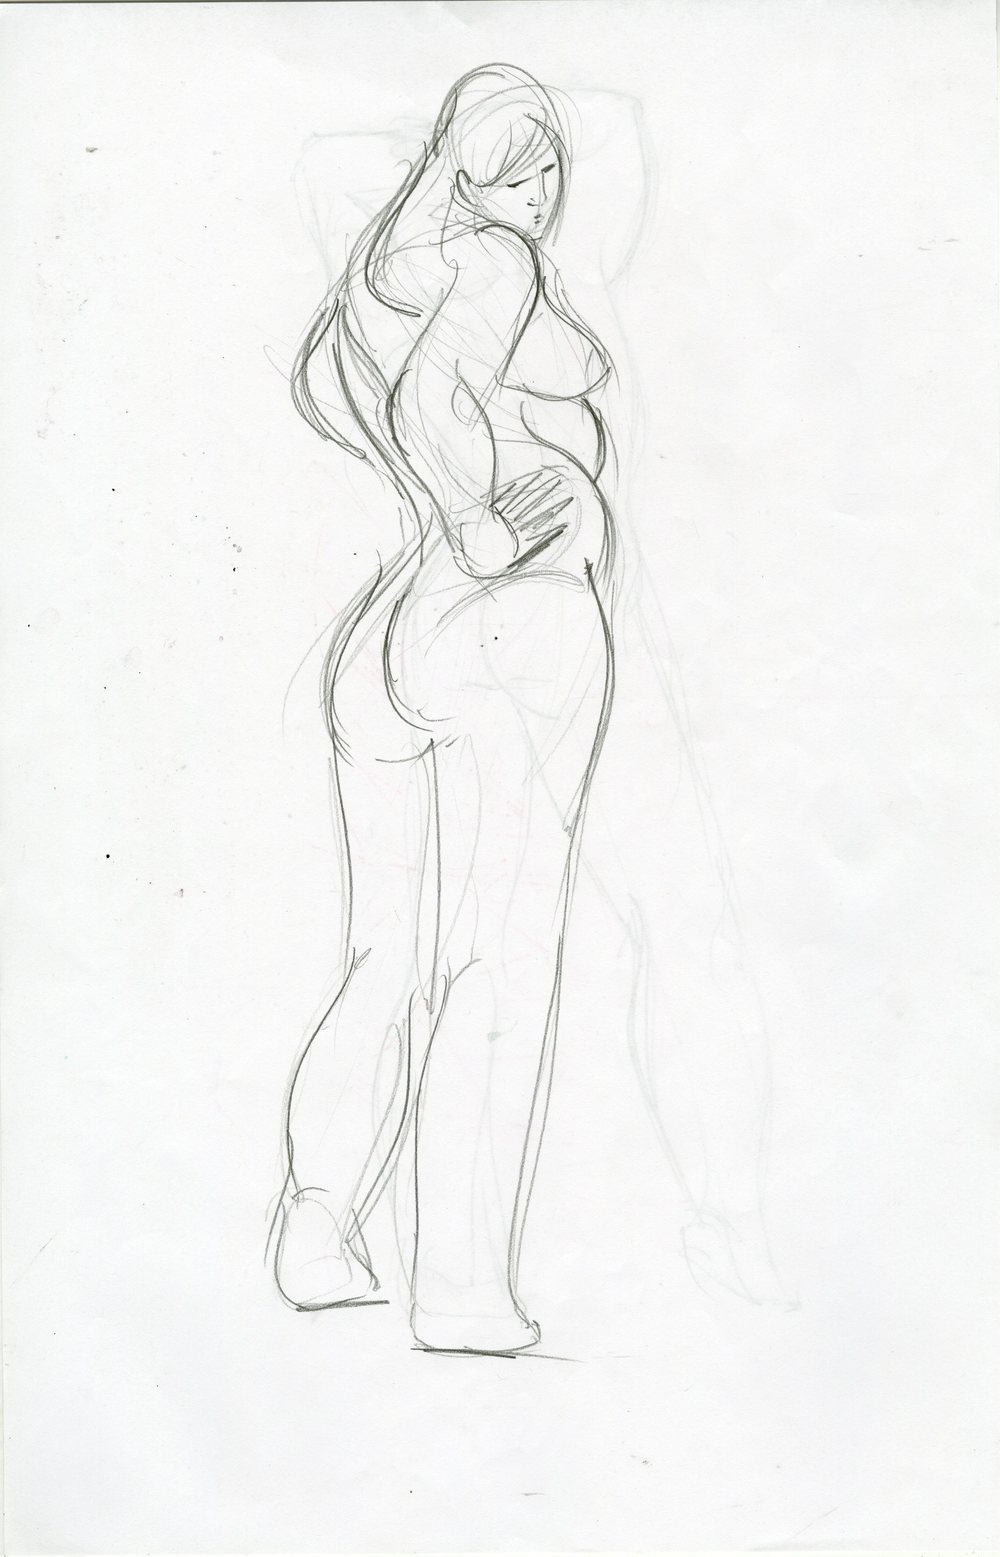 lifeDrawing_010.jpg